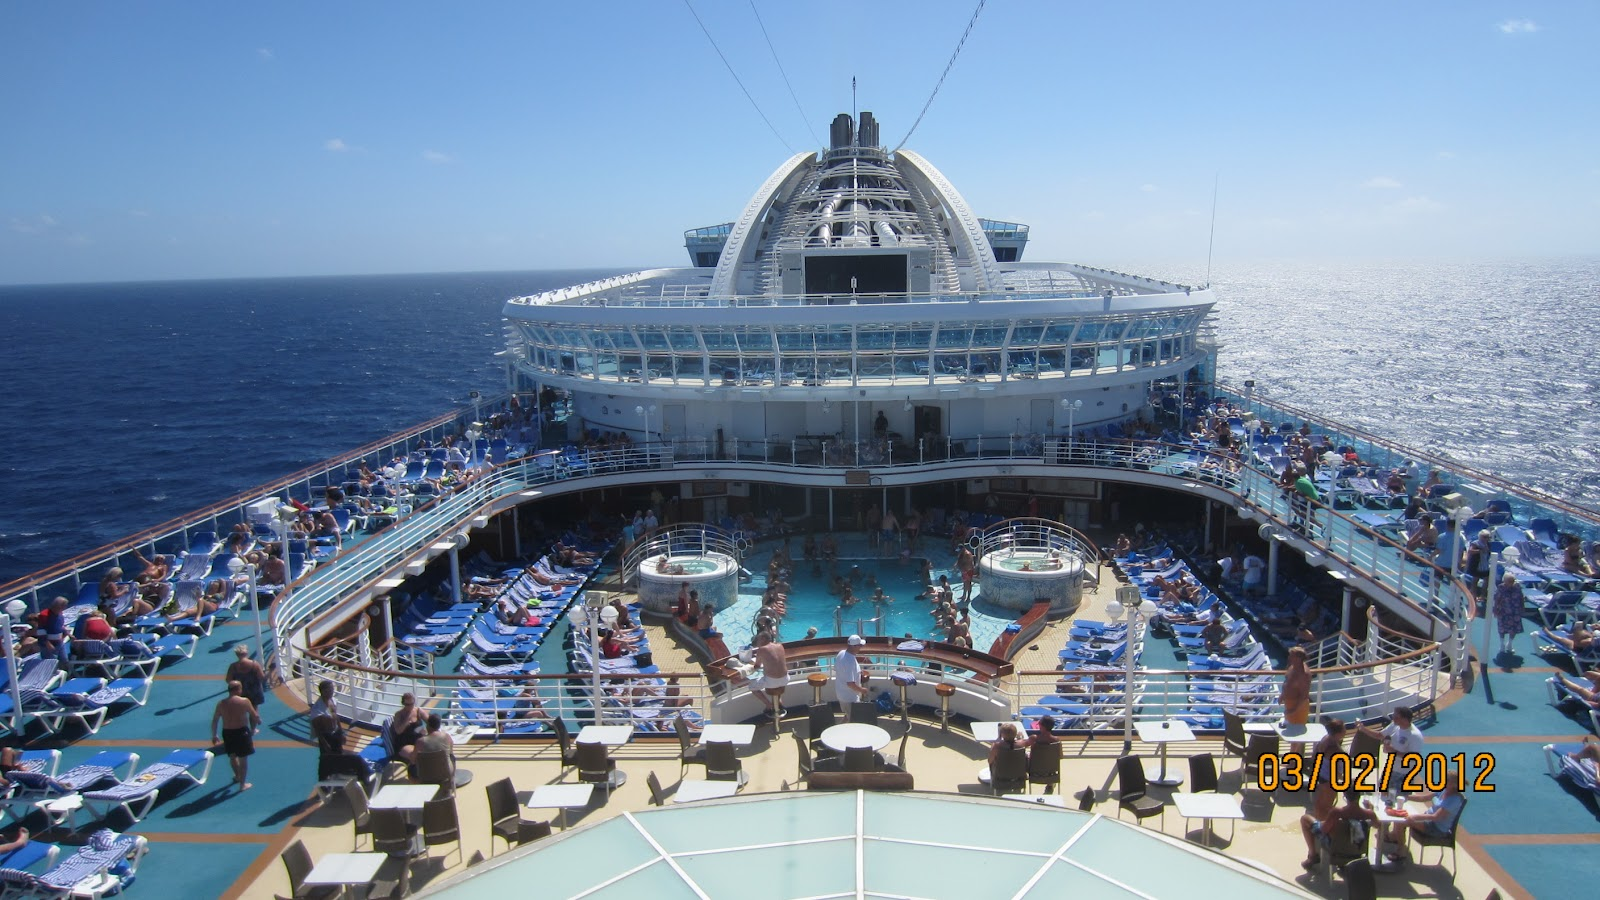 Cruises To Aruba >> A Blog For Something Really Important The Cruise To Aruba Home Again